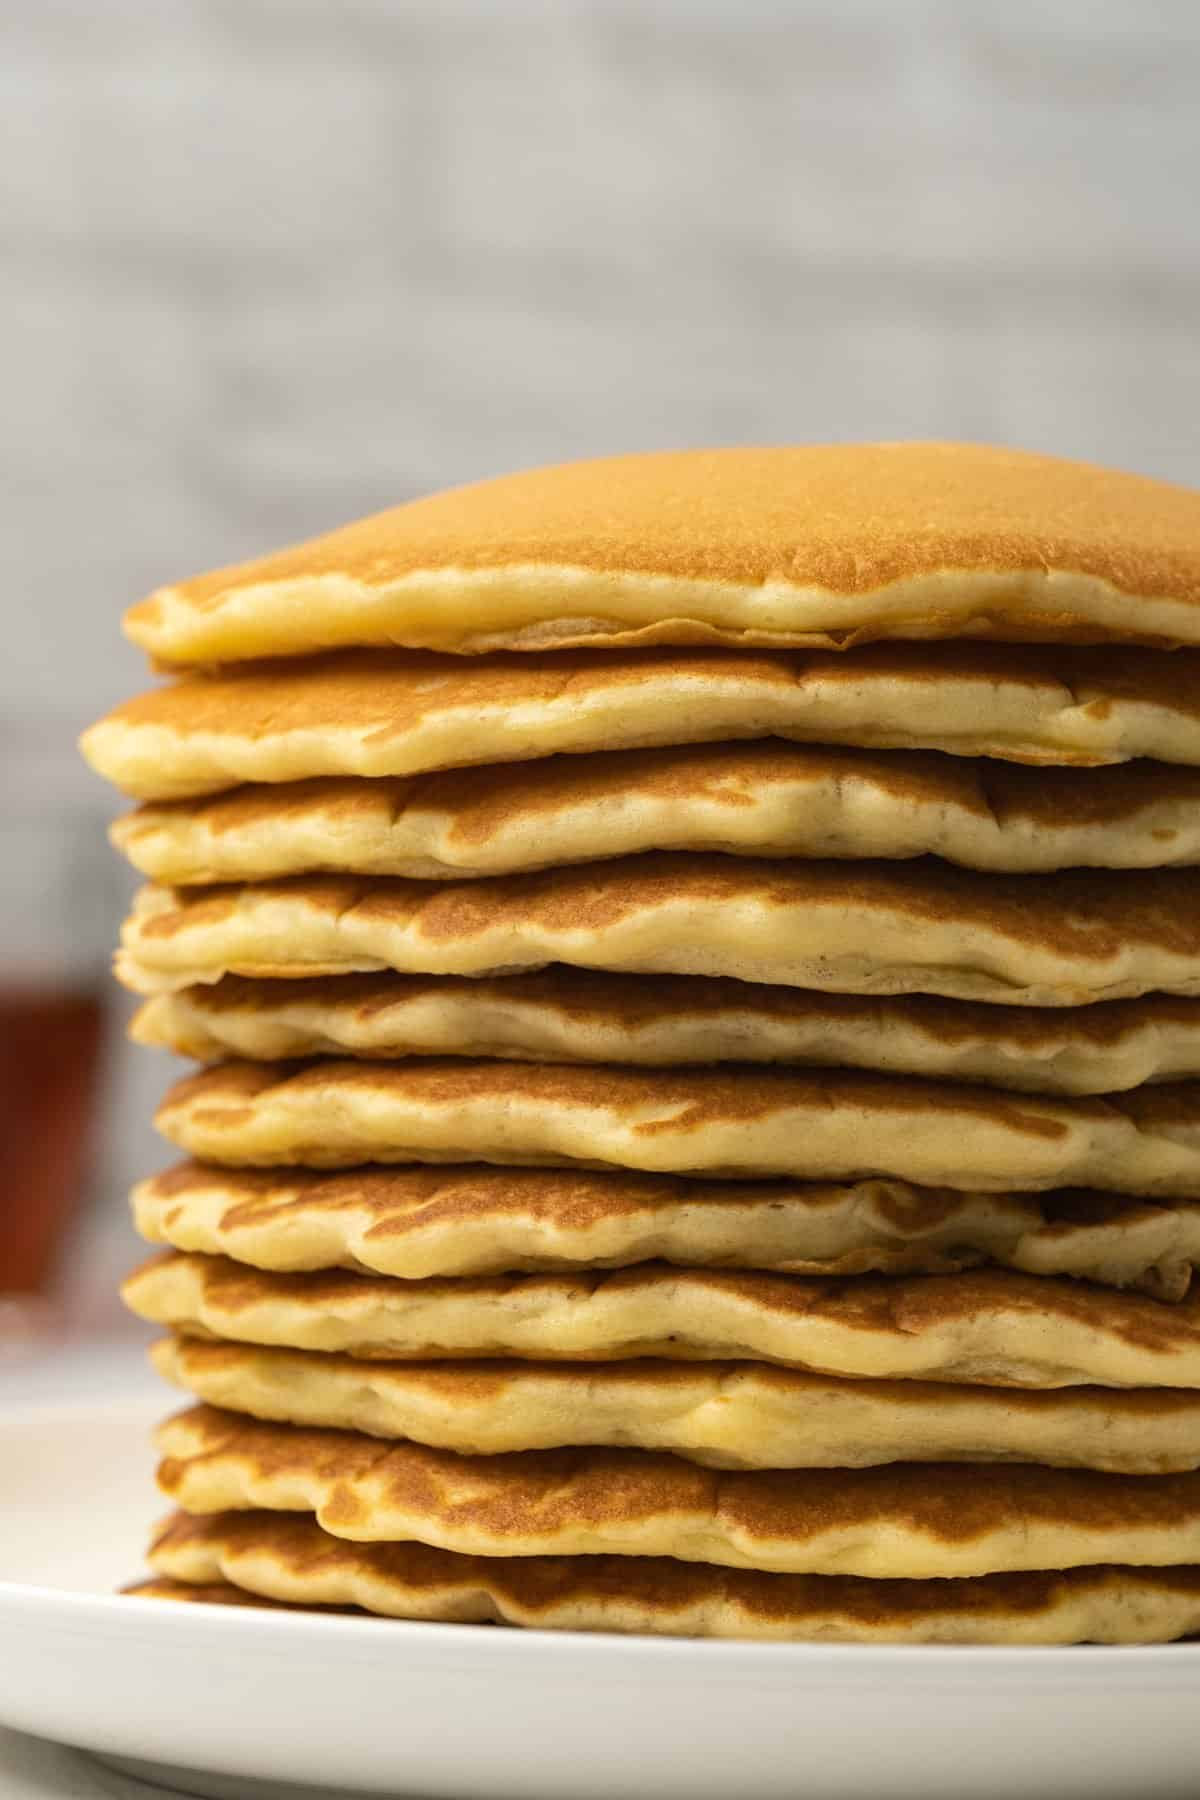 Stack of pancakes on a white plate.